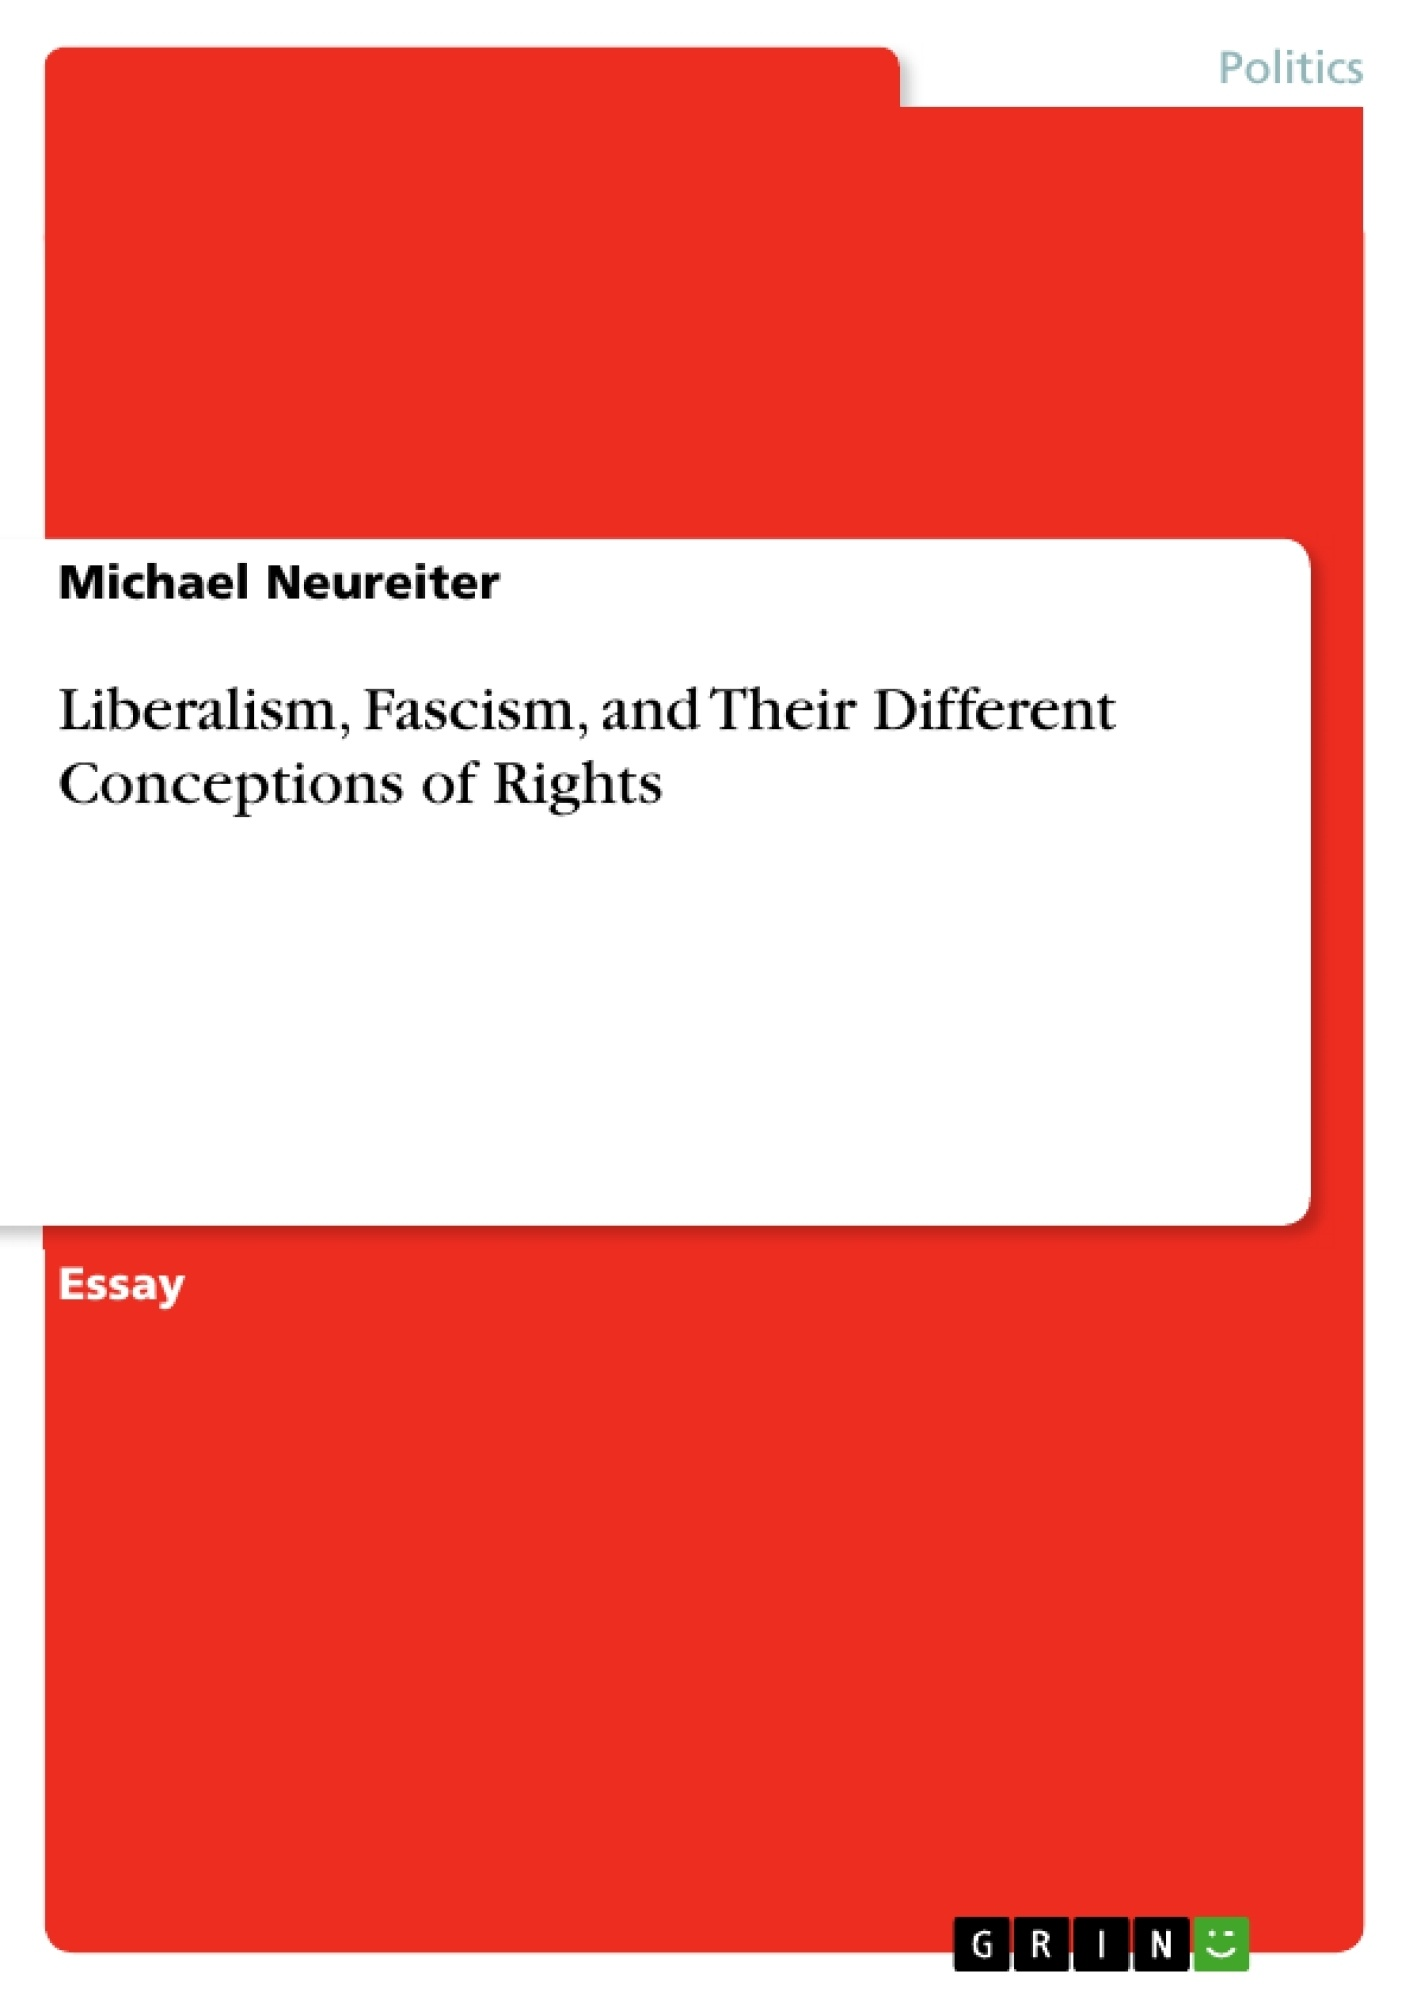 Title: Liberalism, Fascism, and Their Different Conceptions of Rights